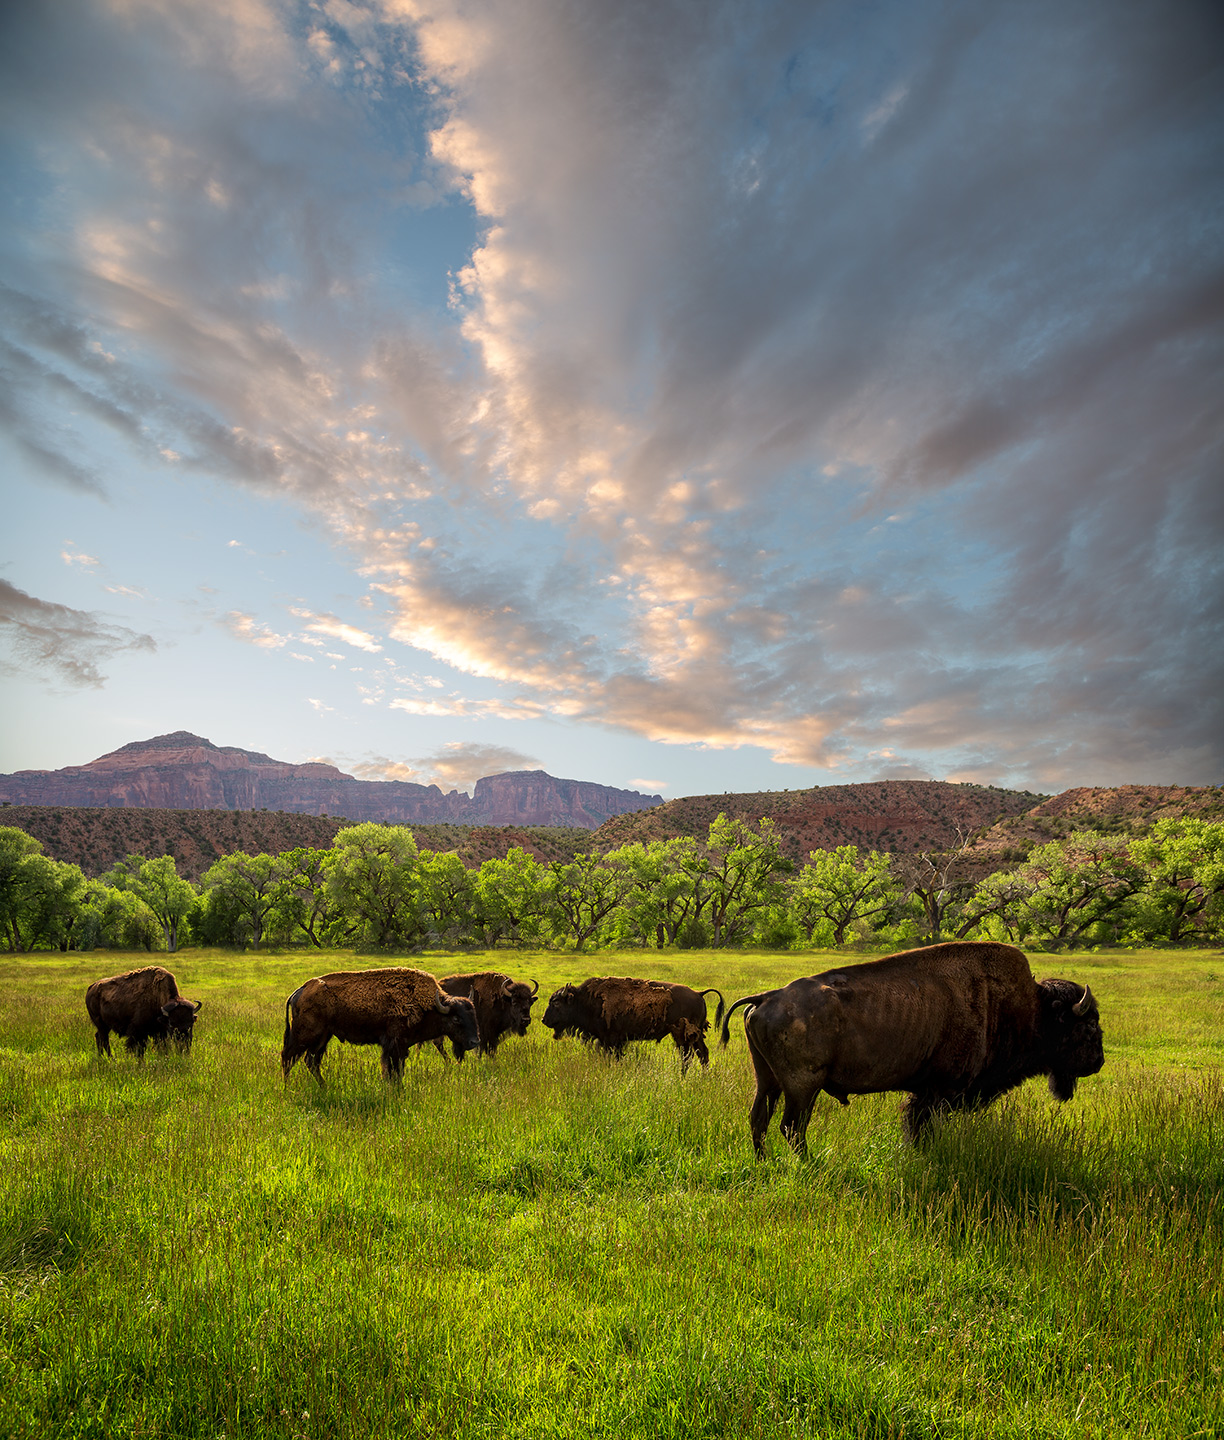 West-Creek-Bison-1-Edit-2